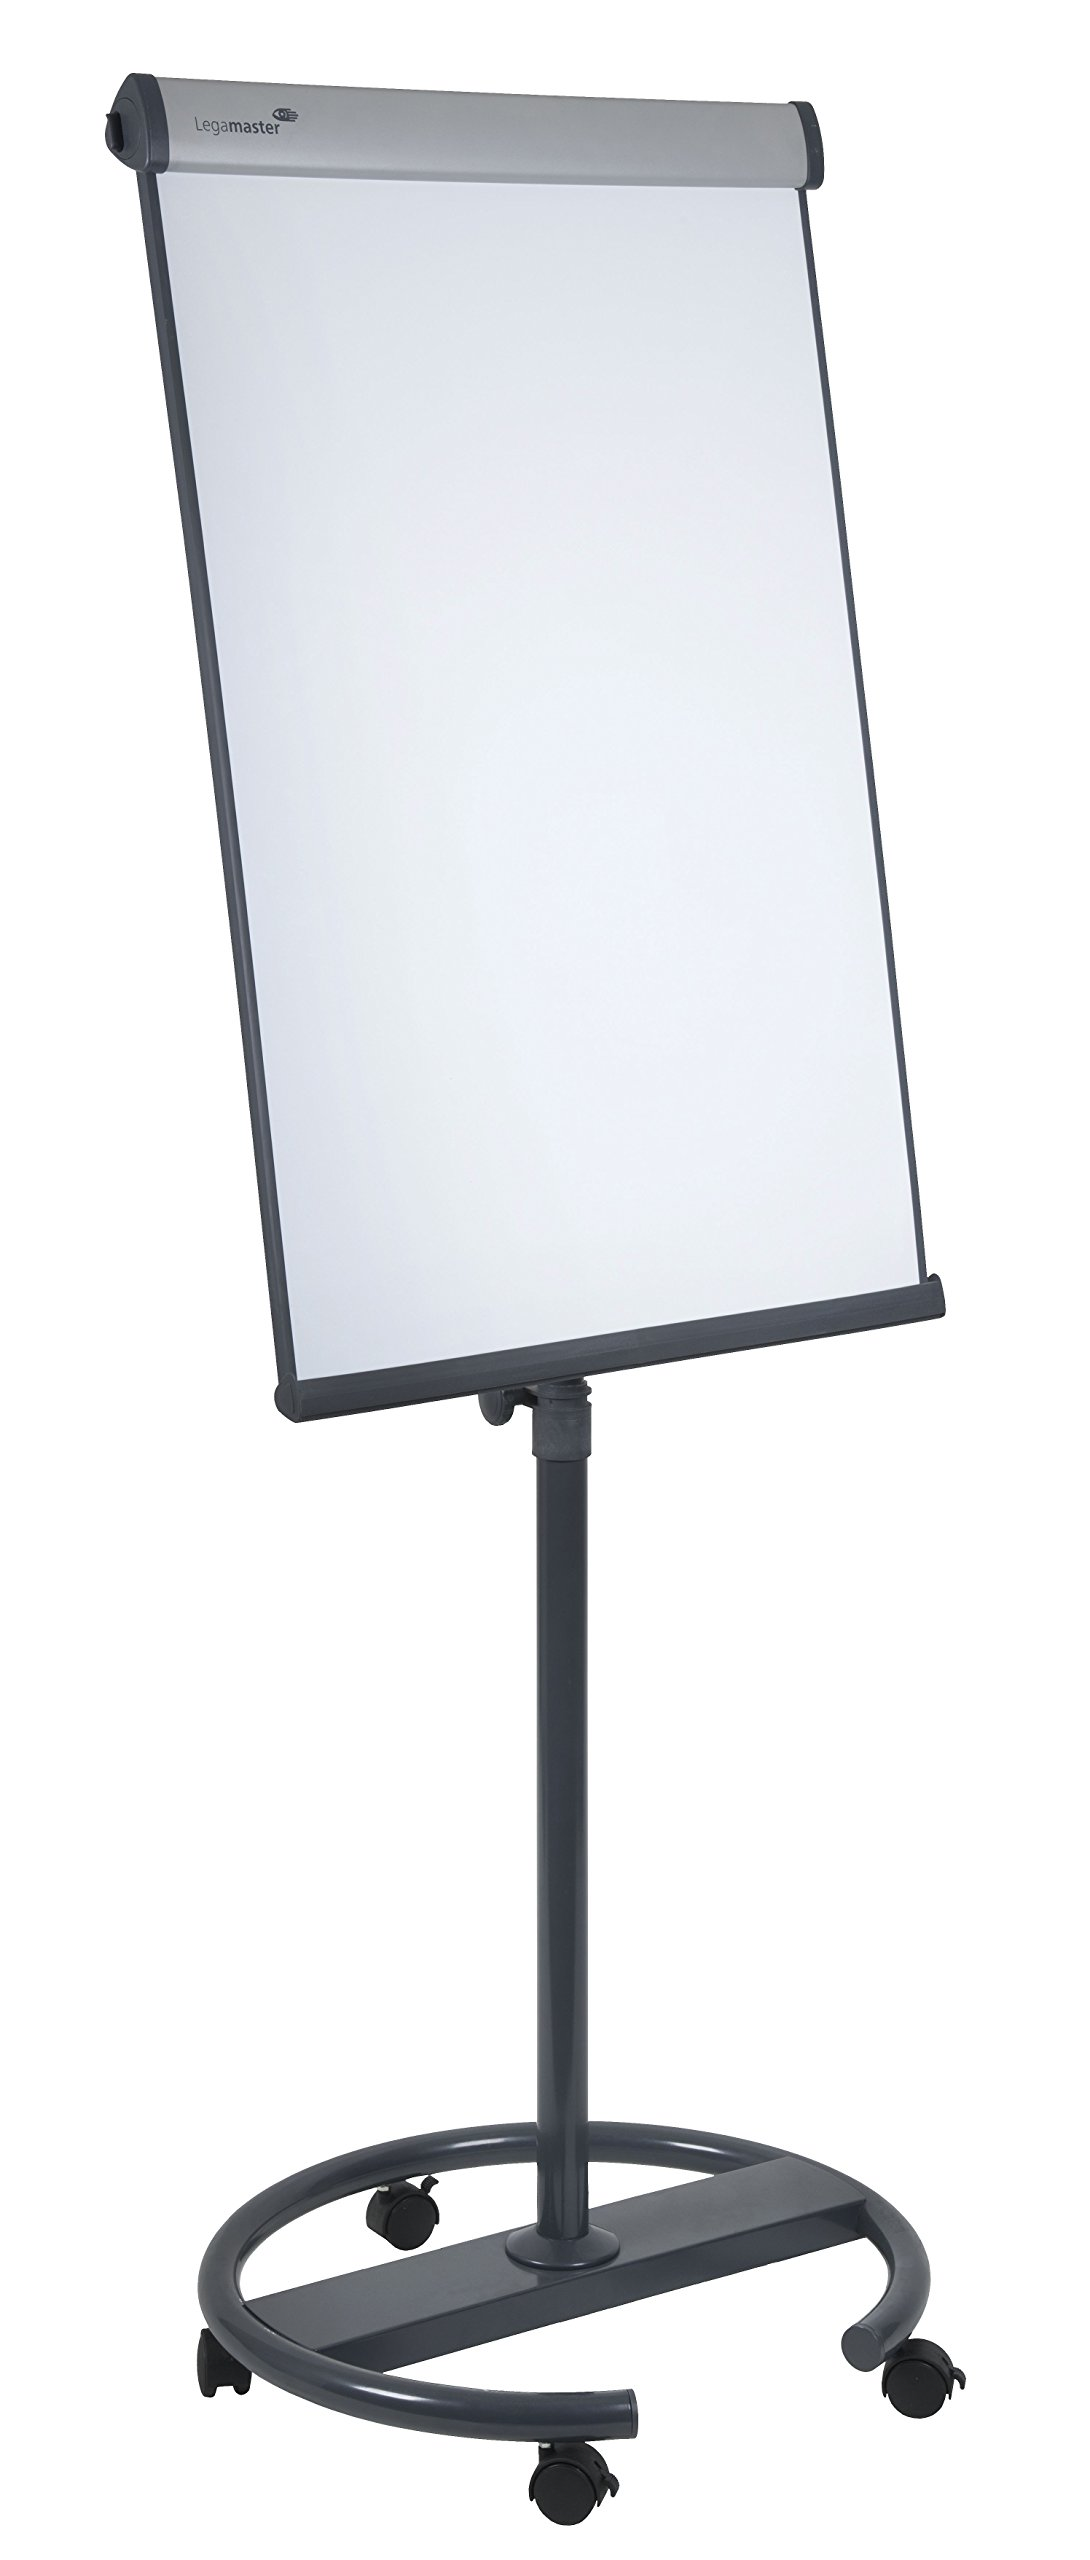 Legamaster Universal Mobile Flipchart Traingle - Round Foot by Legamaster